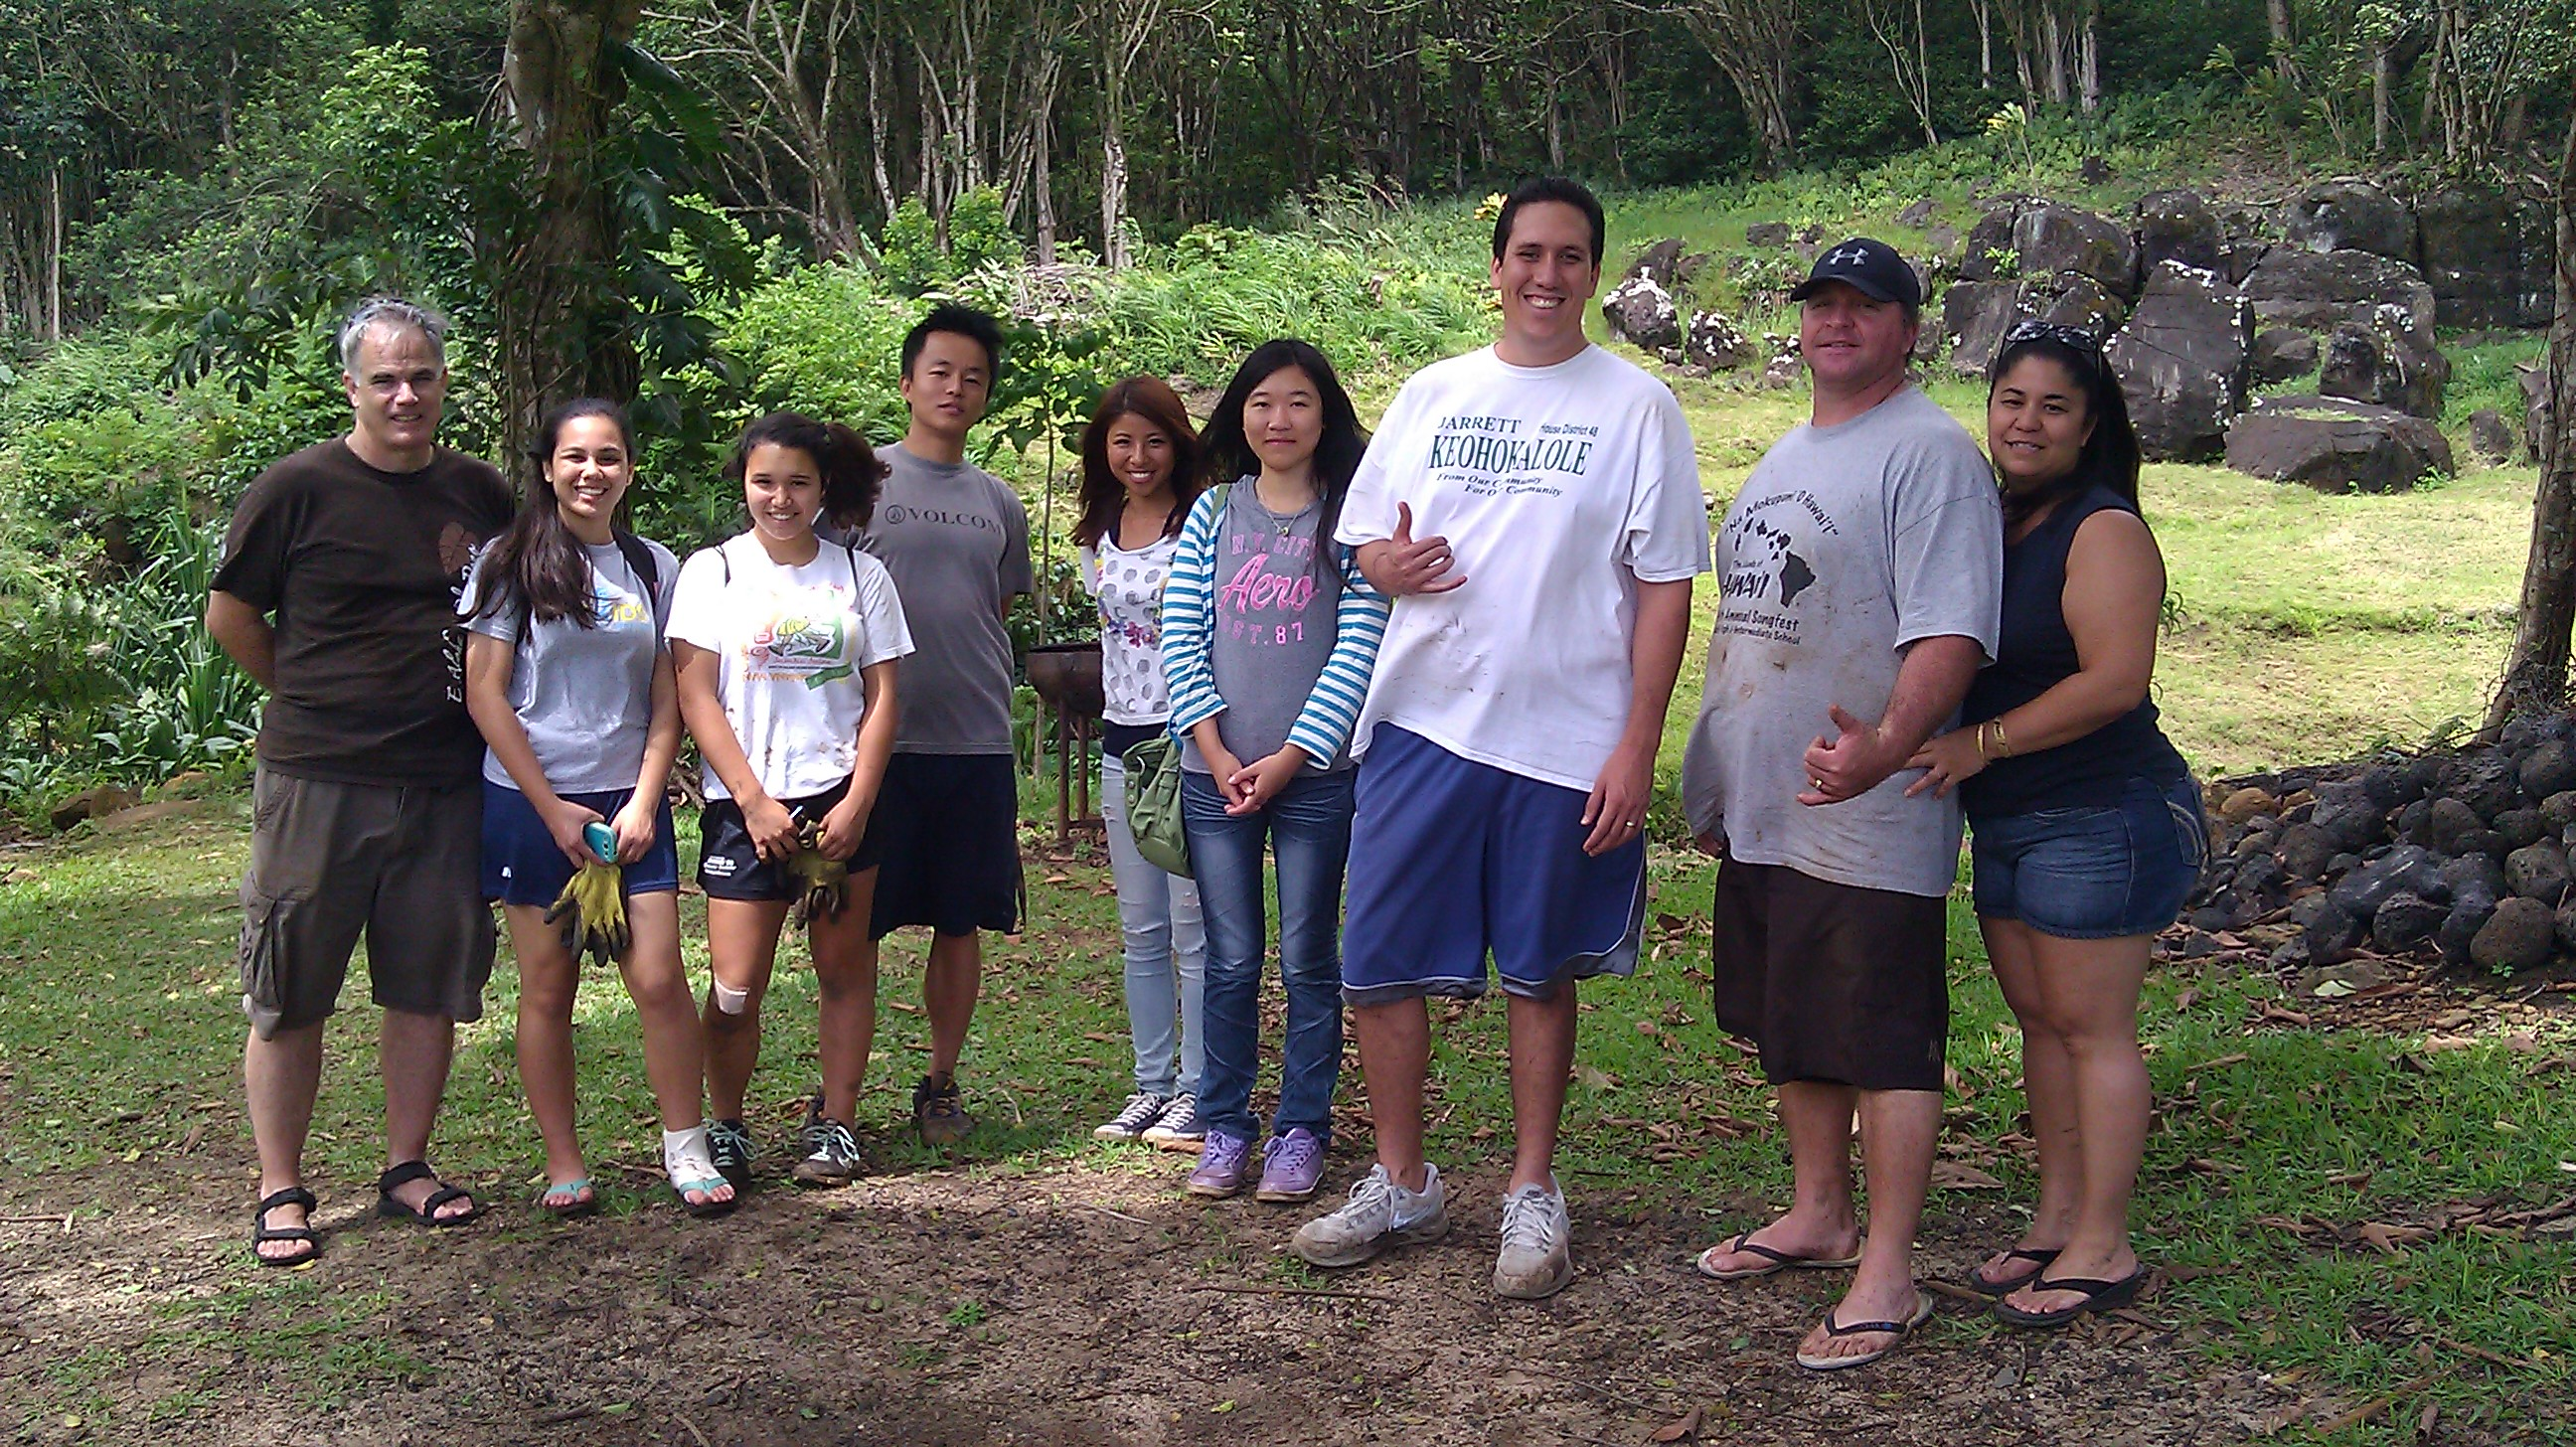 Here was some of the crew from the workday. Kamehameha Schools and University of Hawai'i students, as well as community members and families all pitched in to help malama aina here at beautiful Papahana Kuaola in the back of Haiku Valley.